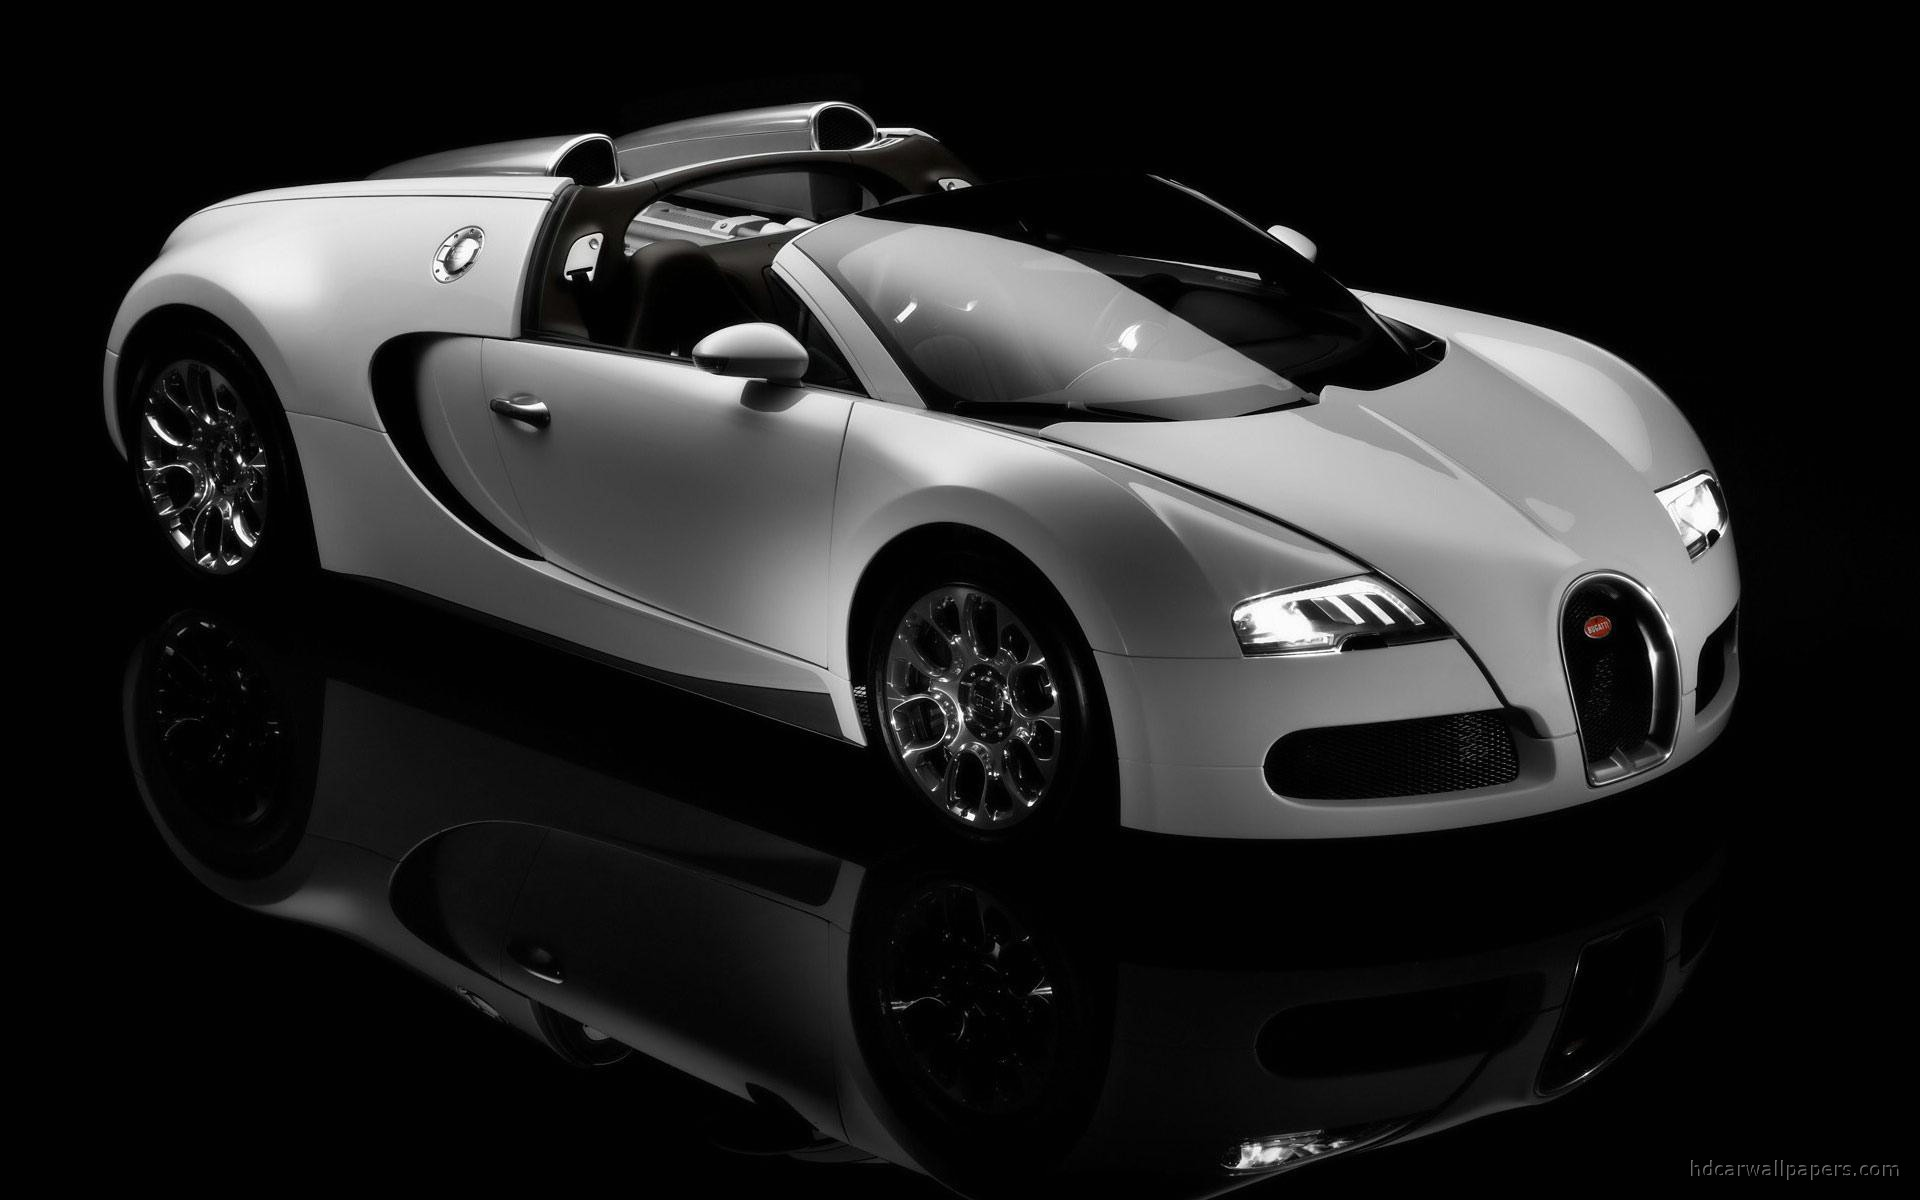 Bugatti Veyron Wallpaper Free Downloads